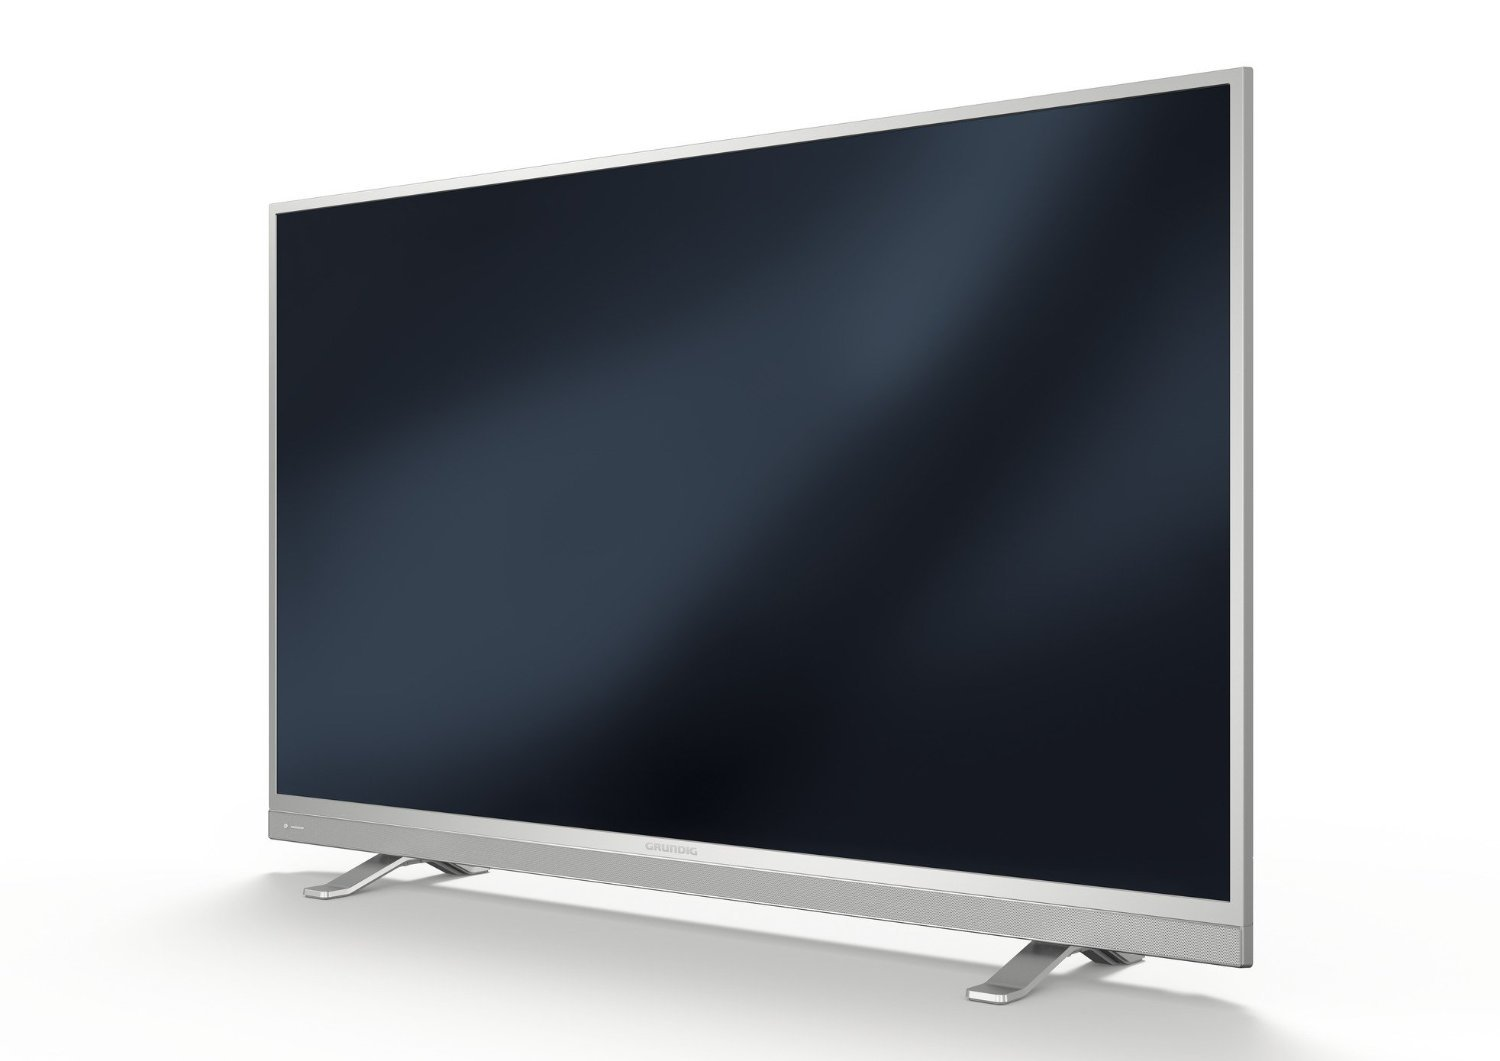 grundig 42vle8510sl test full hd fernseher. Black Bedroom Furniture Sets. Home Design Ideas